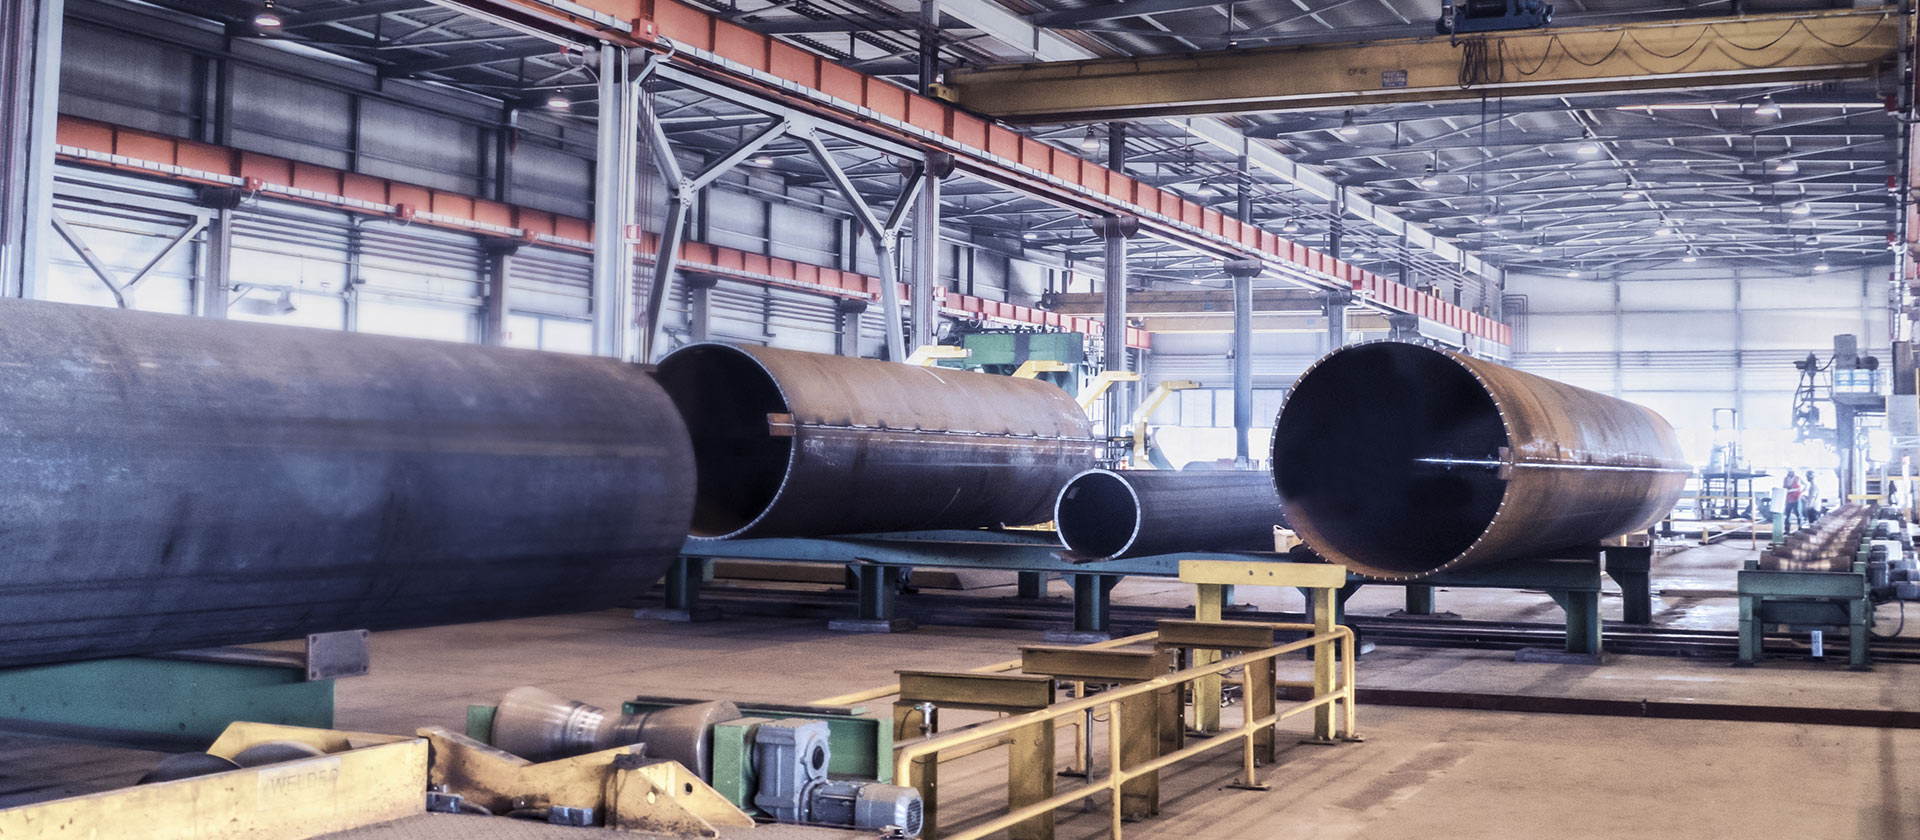 Cimolai - production of large diameter and thick pipes, welded and